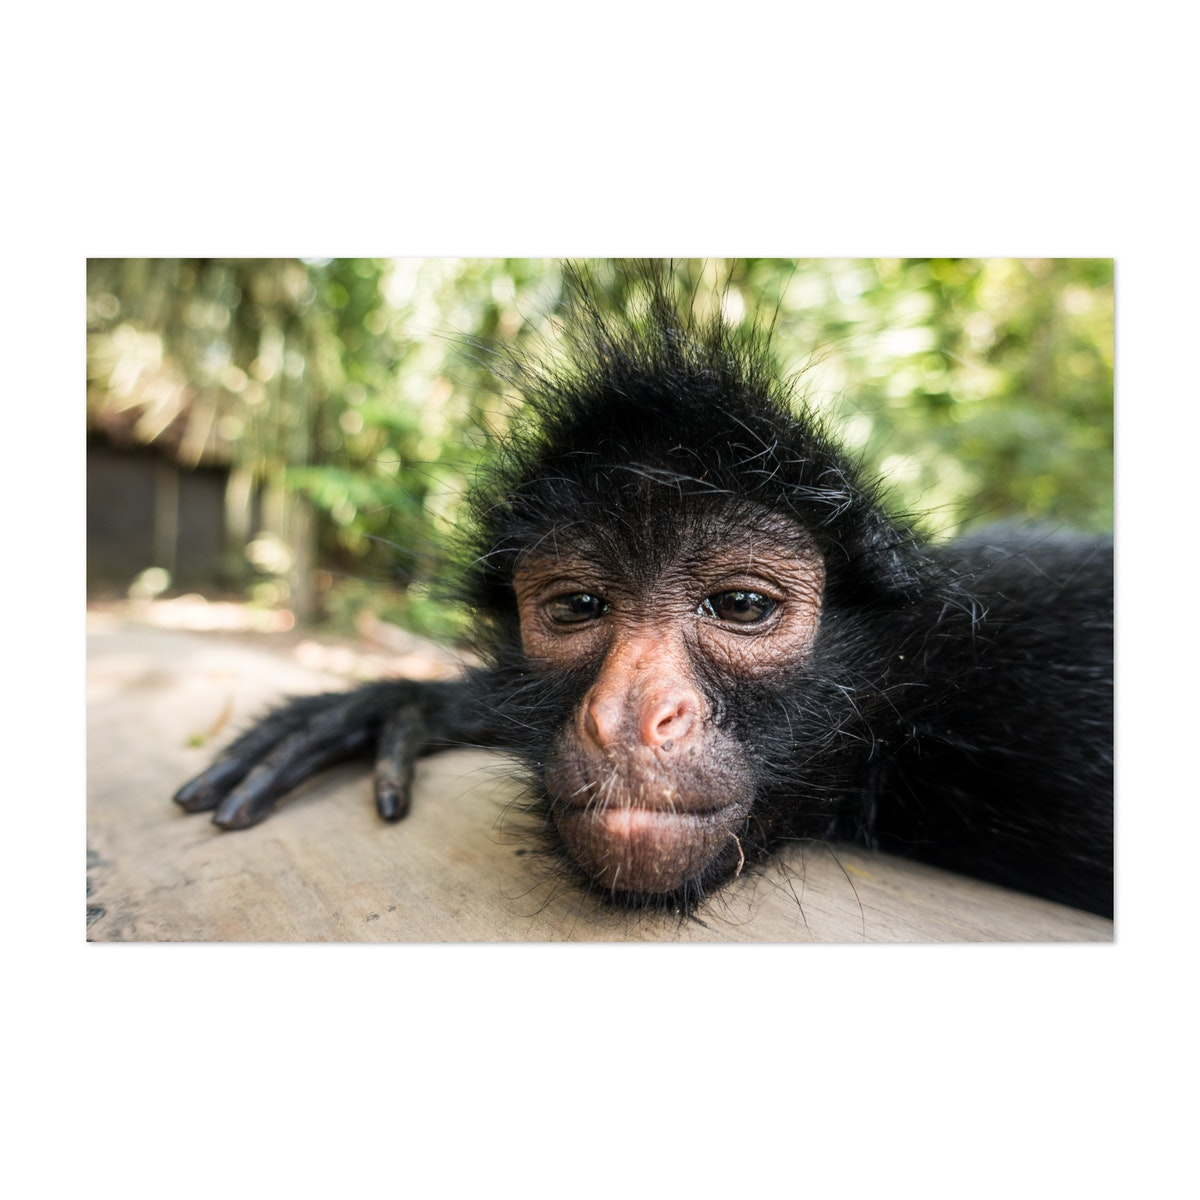 Funny Portrait Of A Curious Spider Monkey